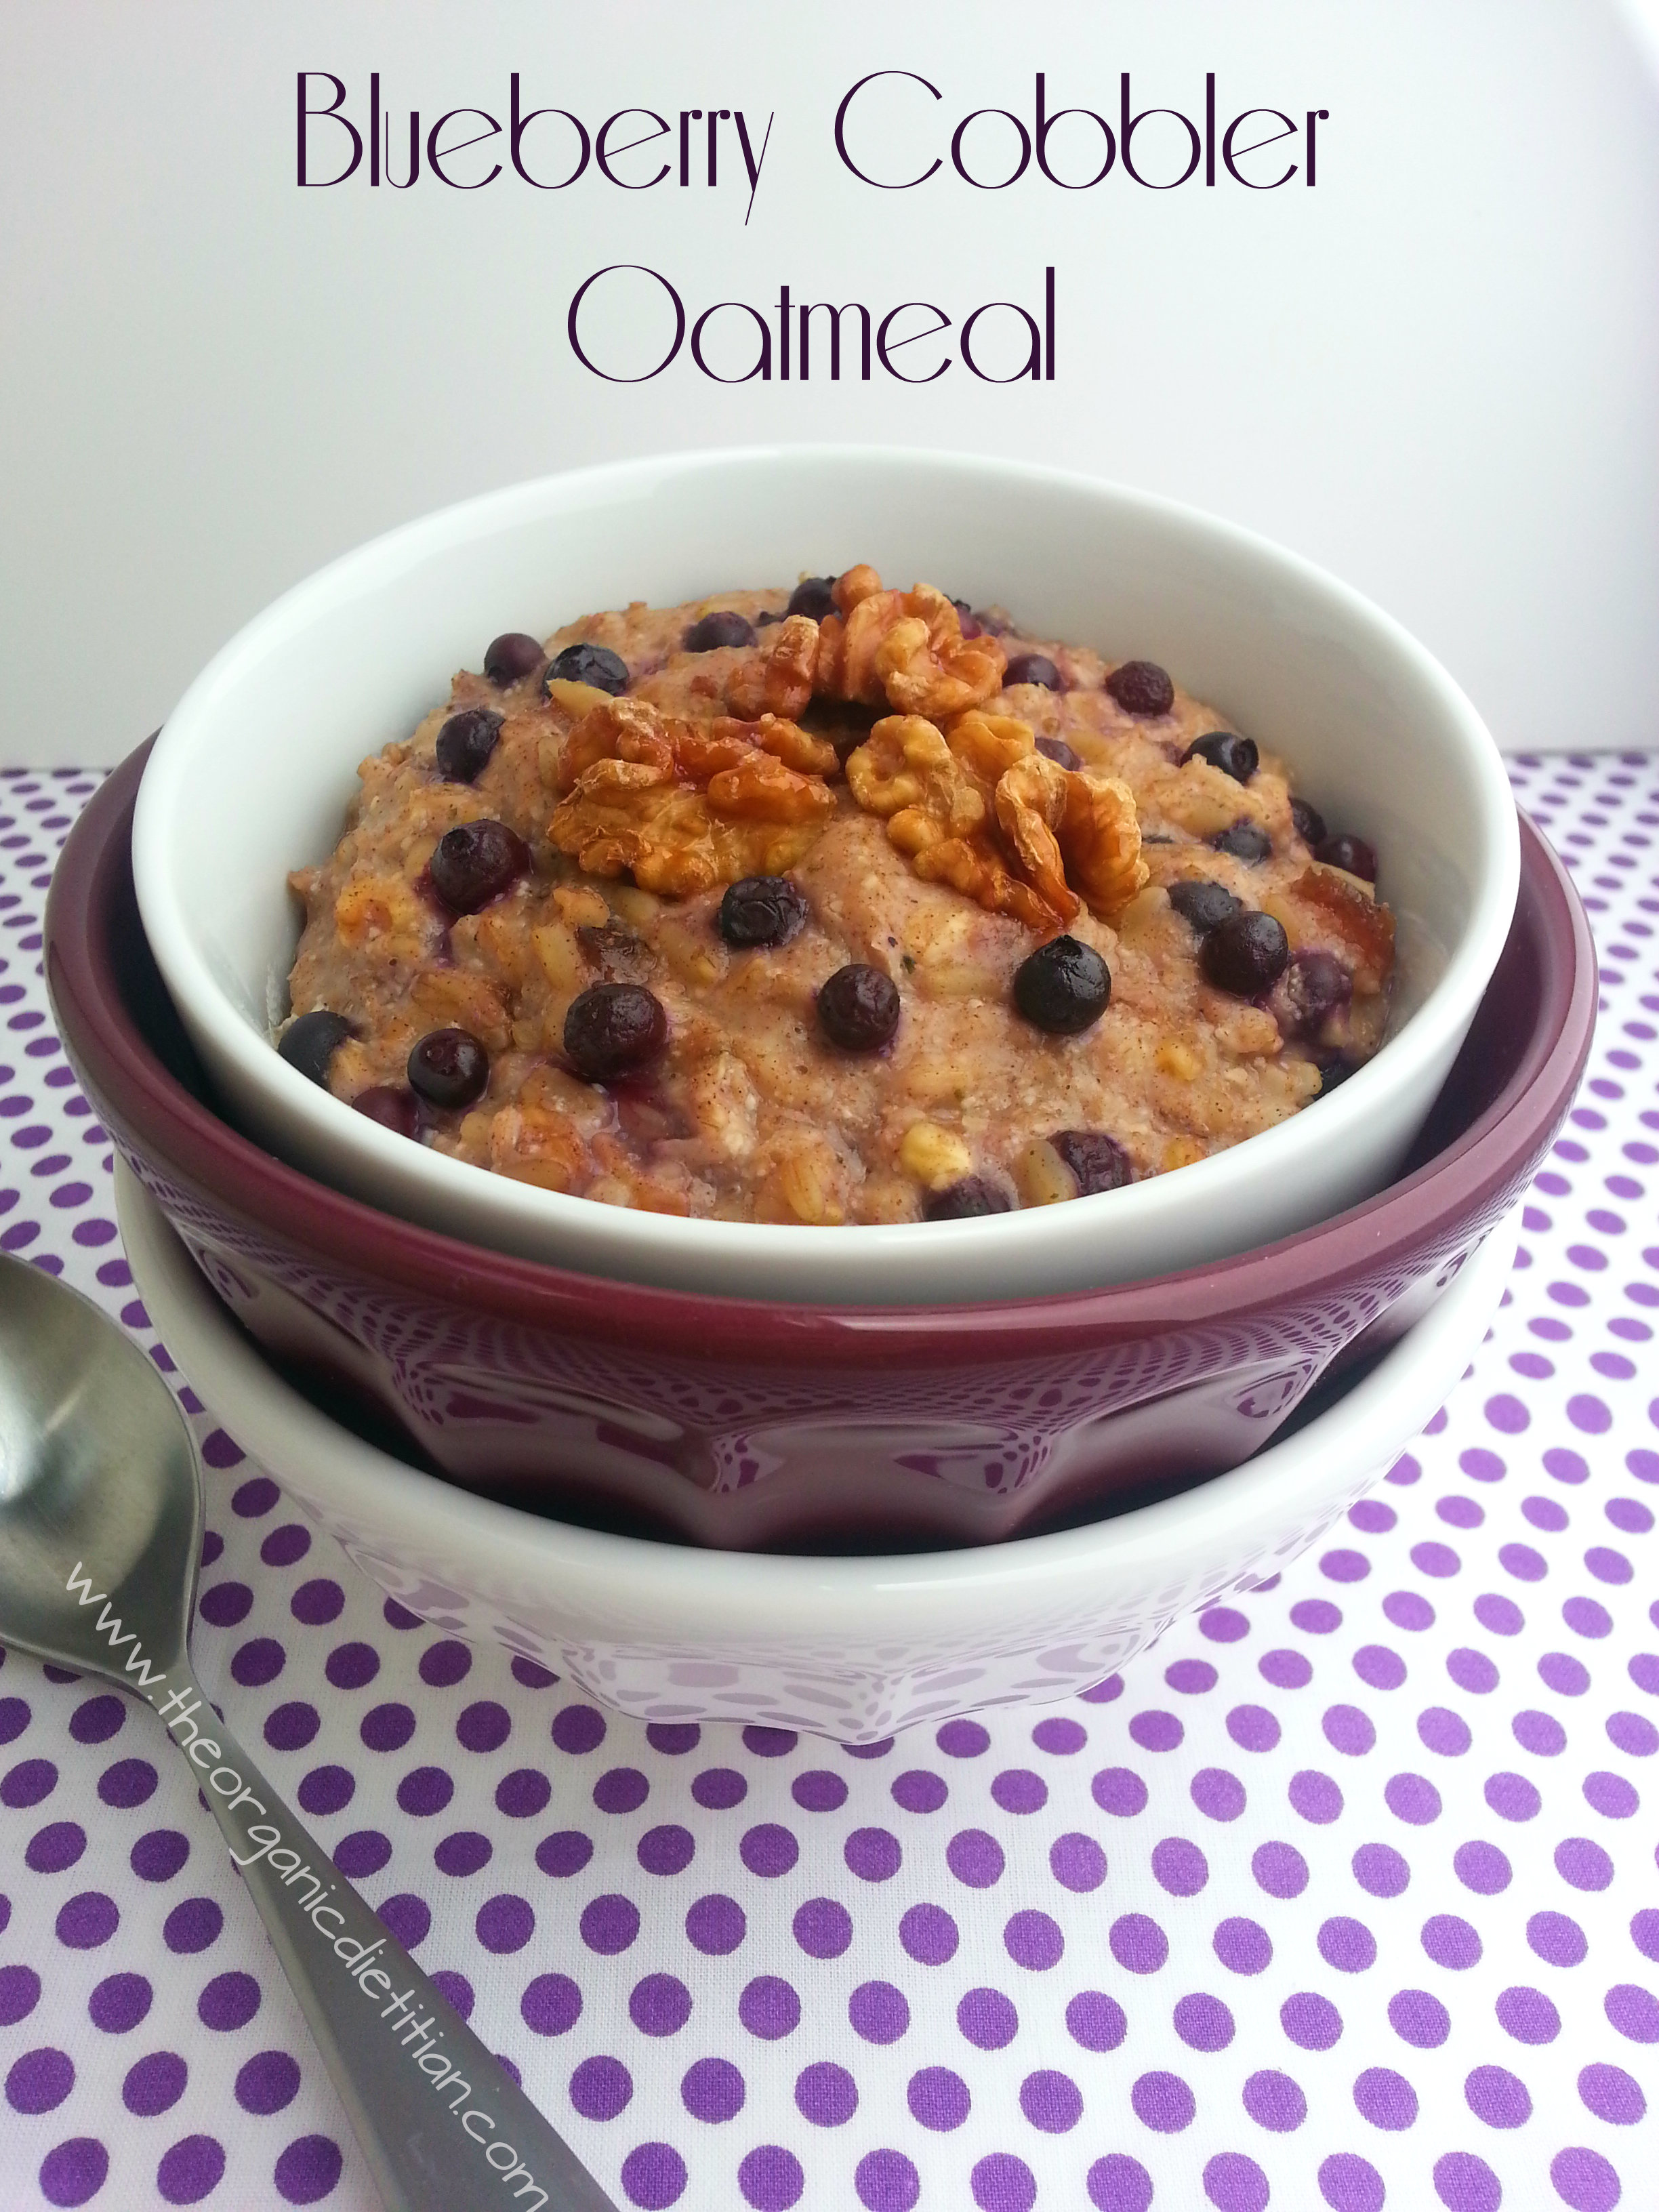 Blueberry Cobbler Oatmeal - The Organic Dietitian